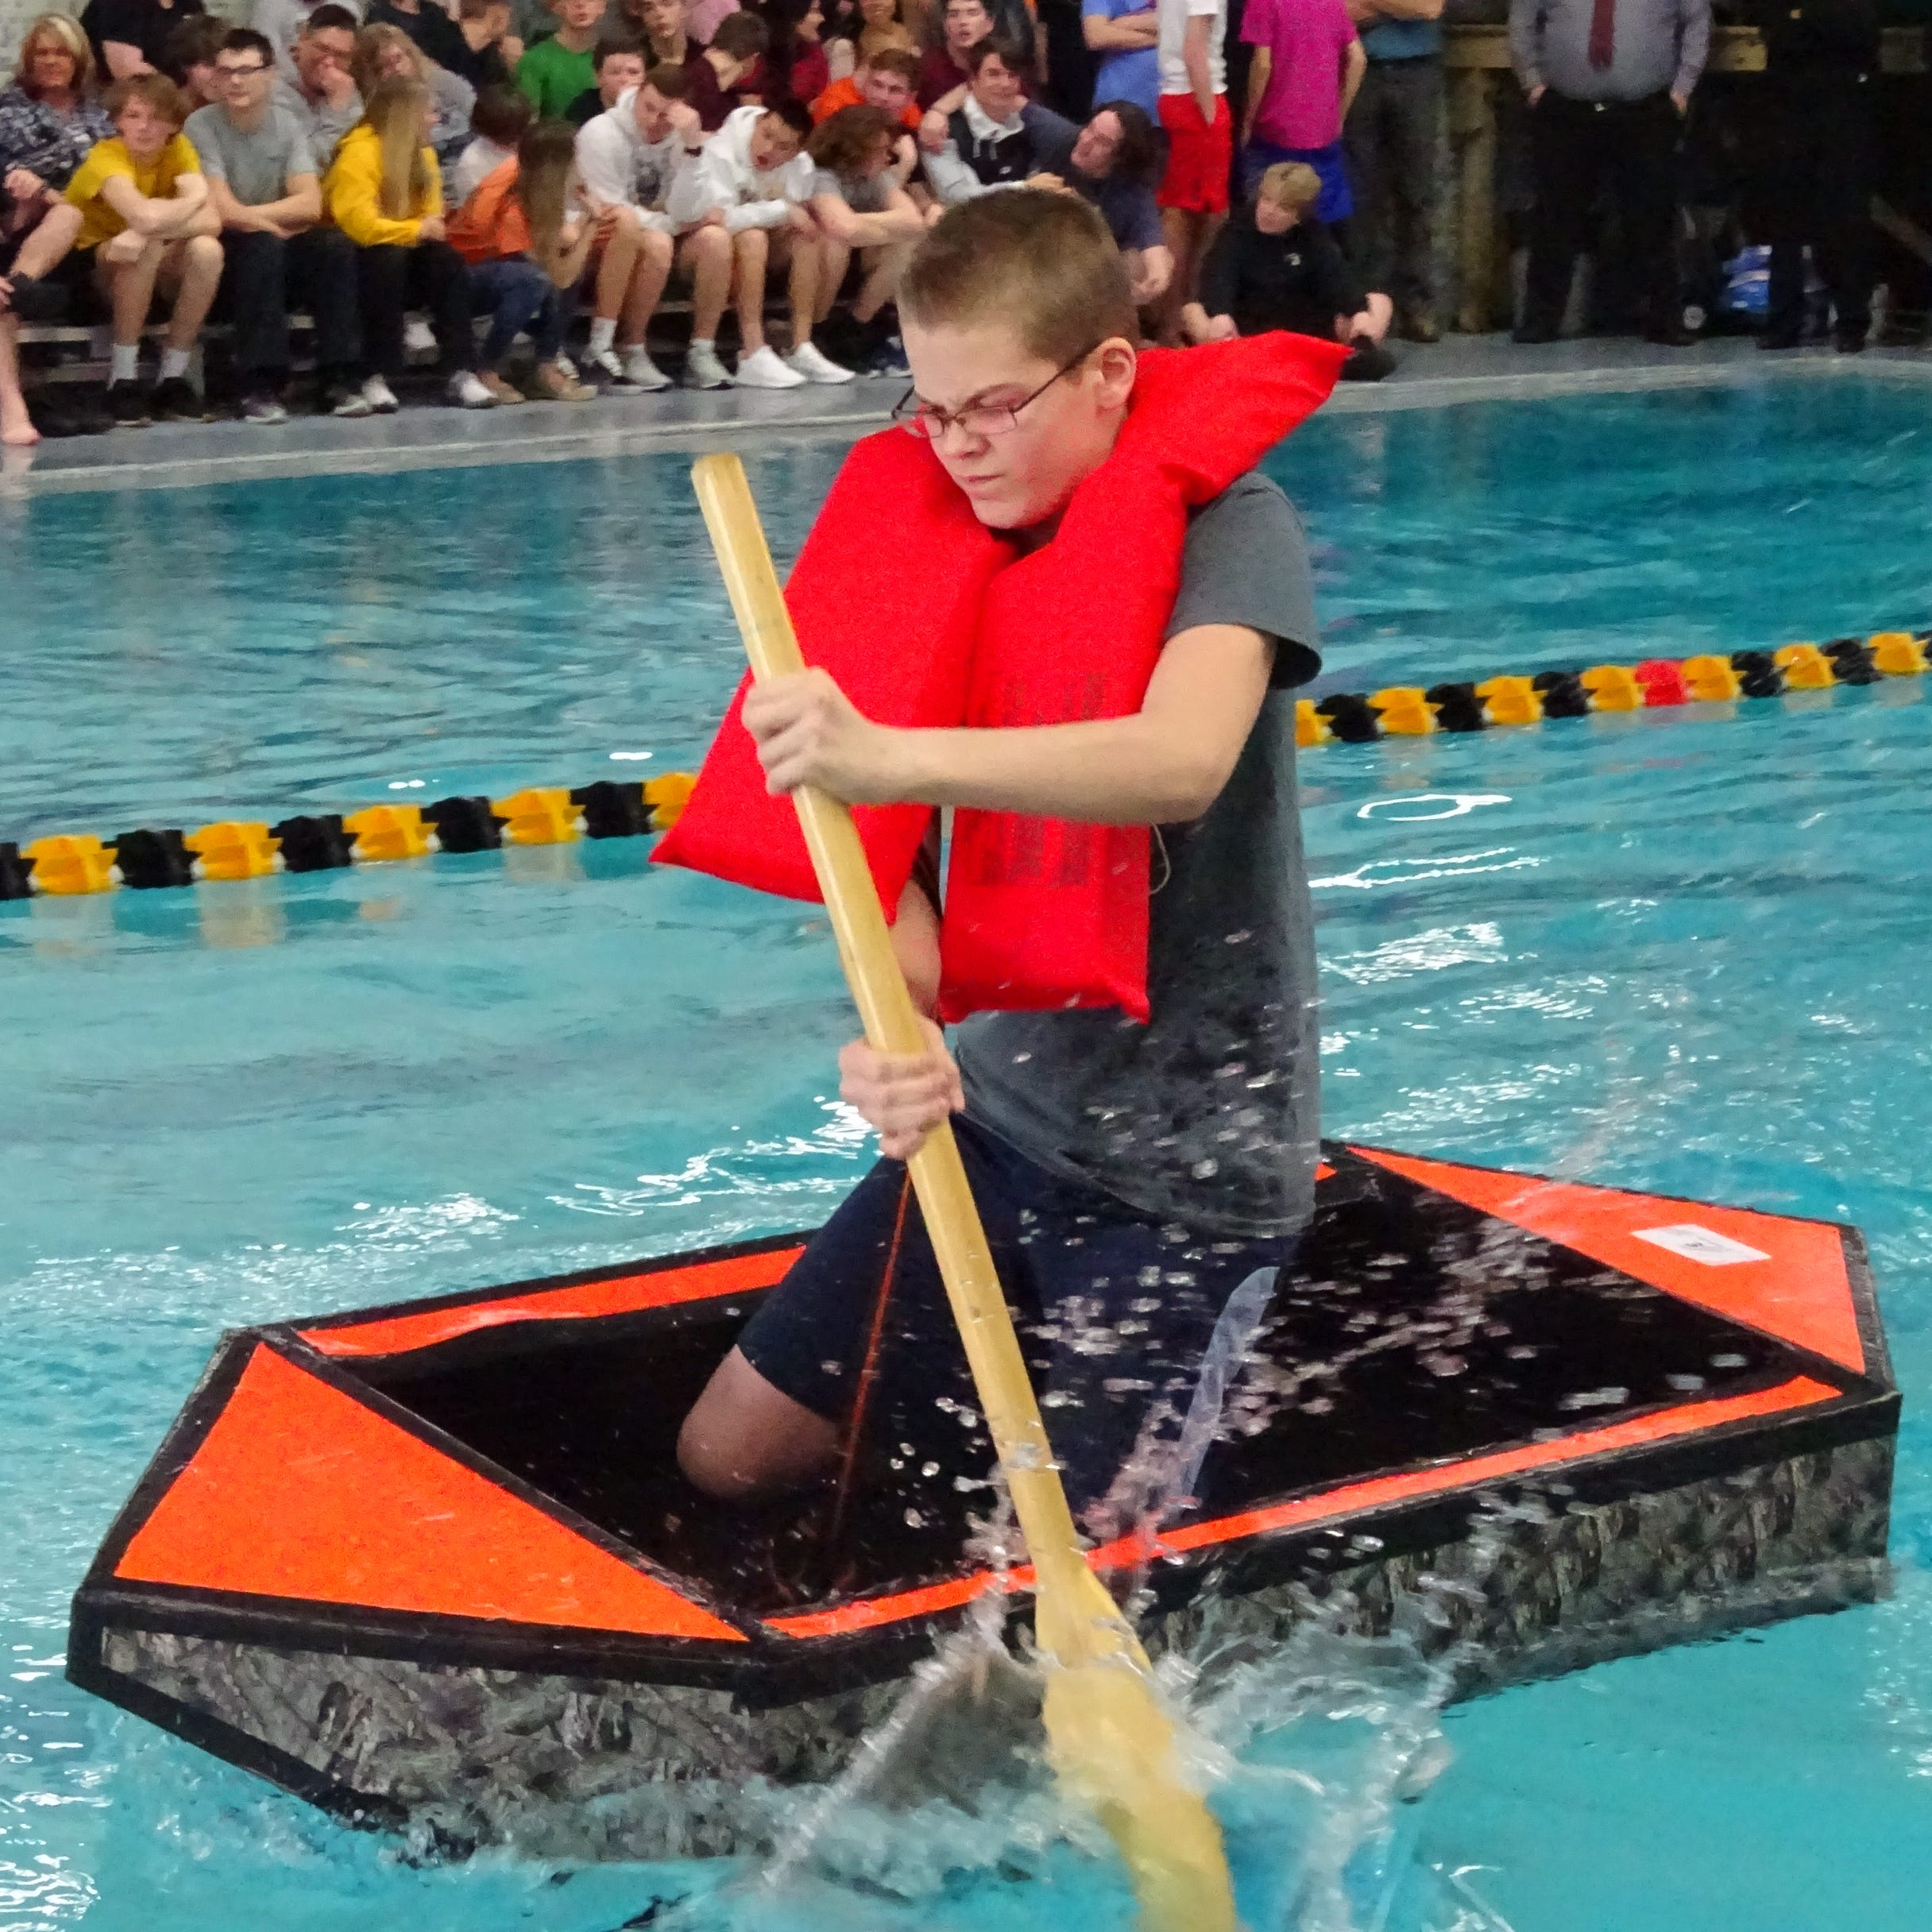 Creativity and duct tape rule at annual Cardboard Boat Regatta